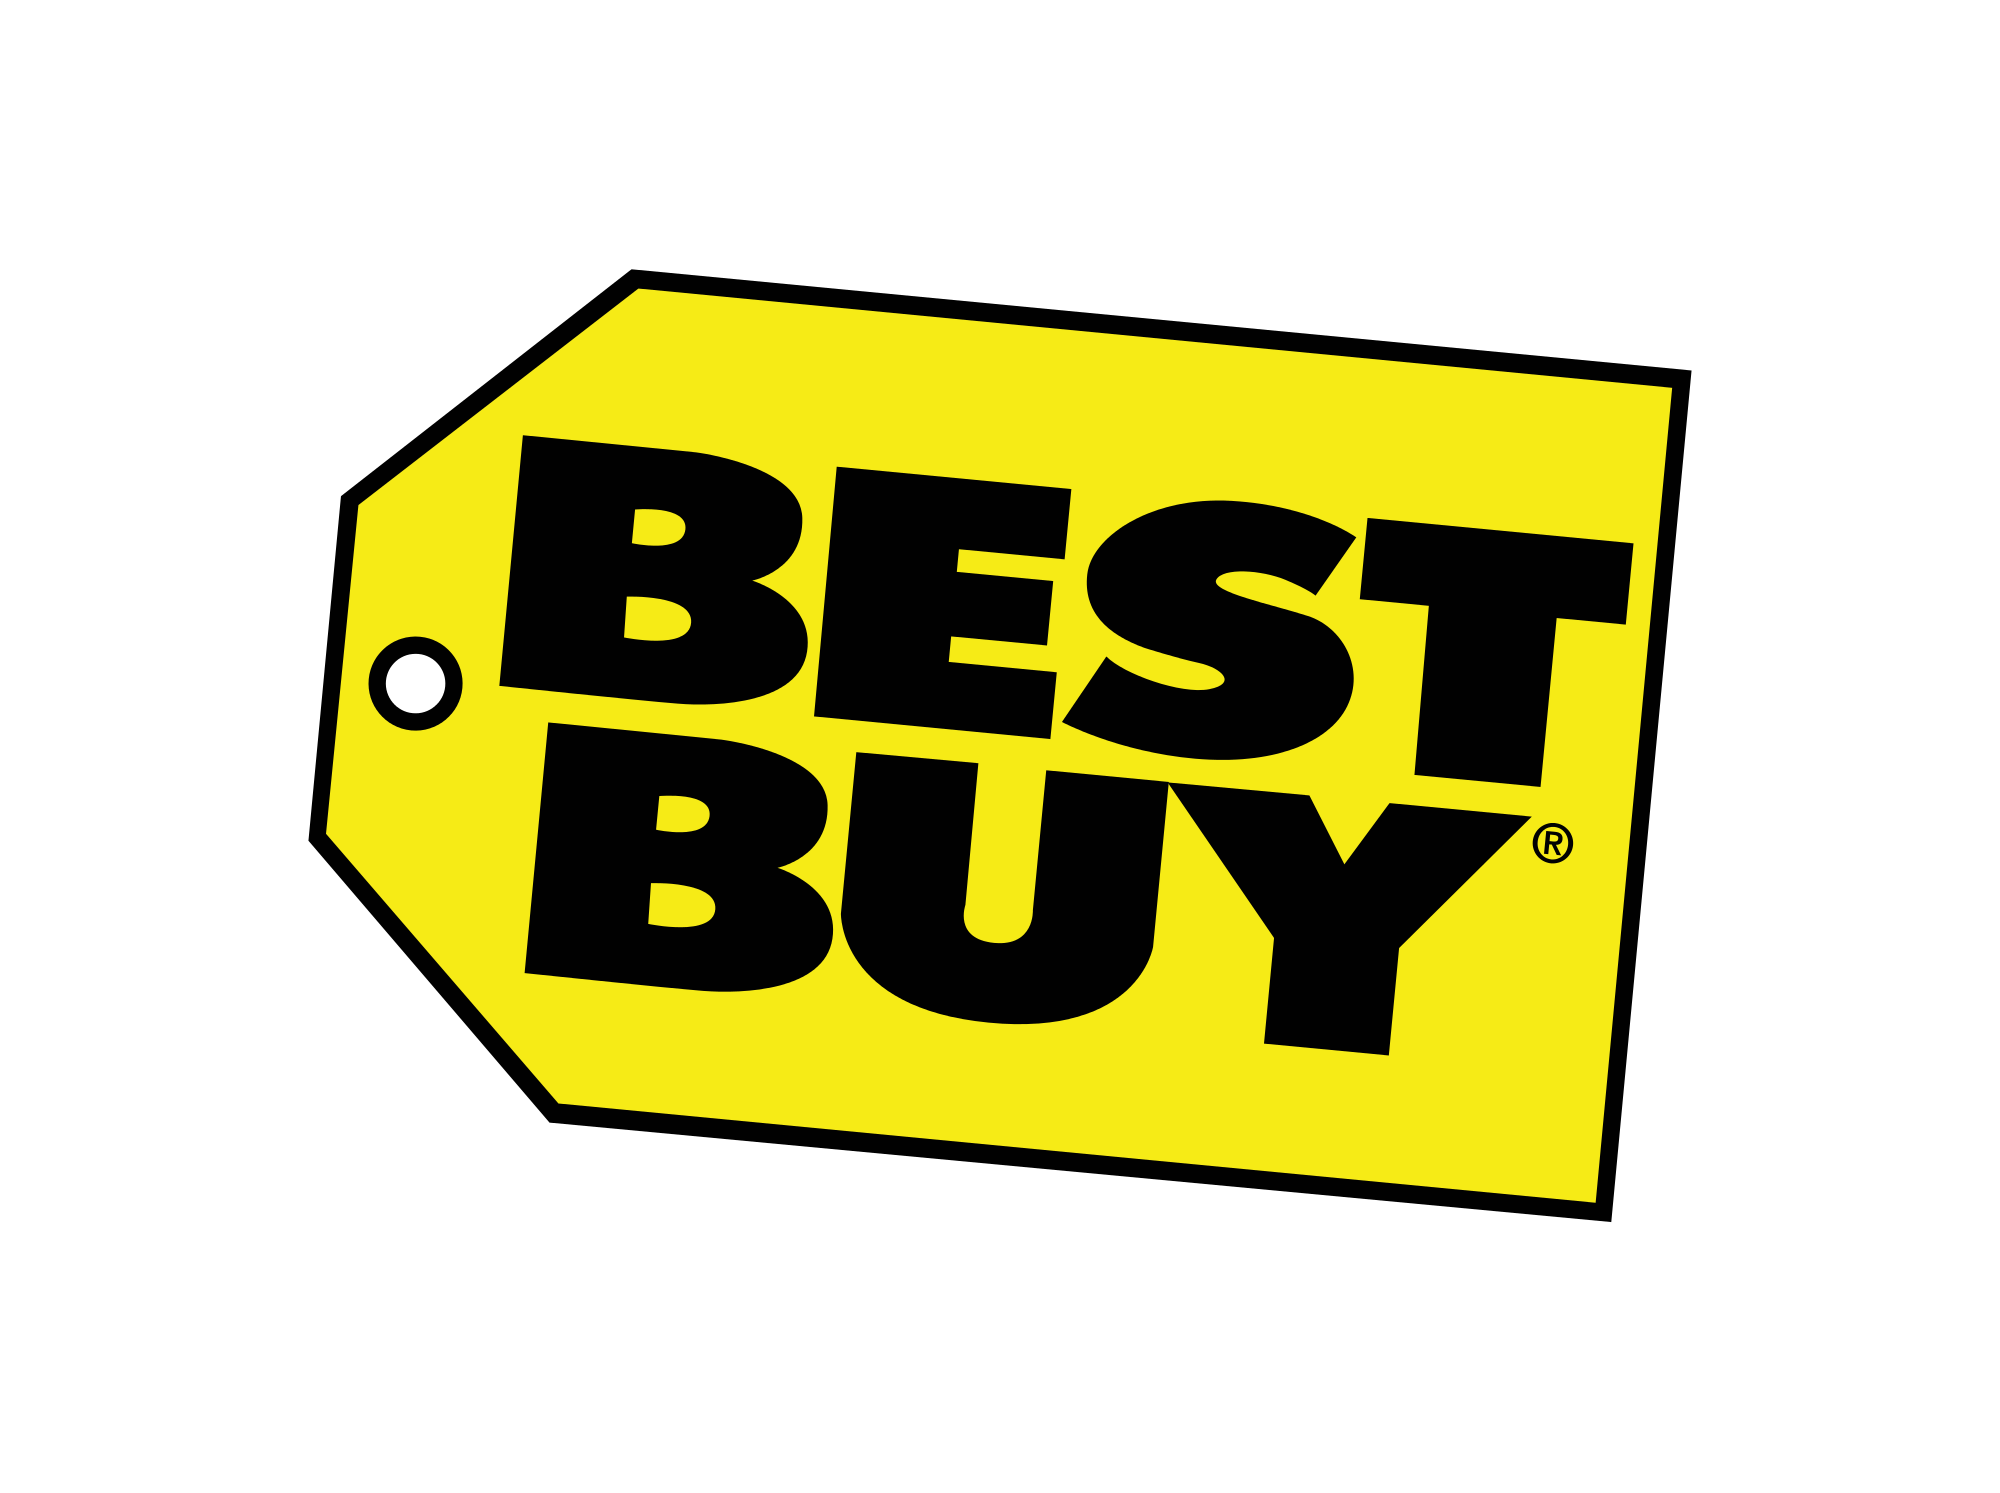 10% off coupon png. Bestbuy item check your